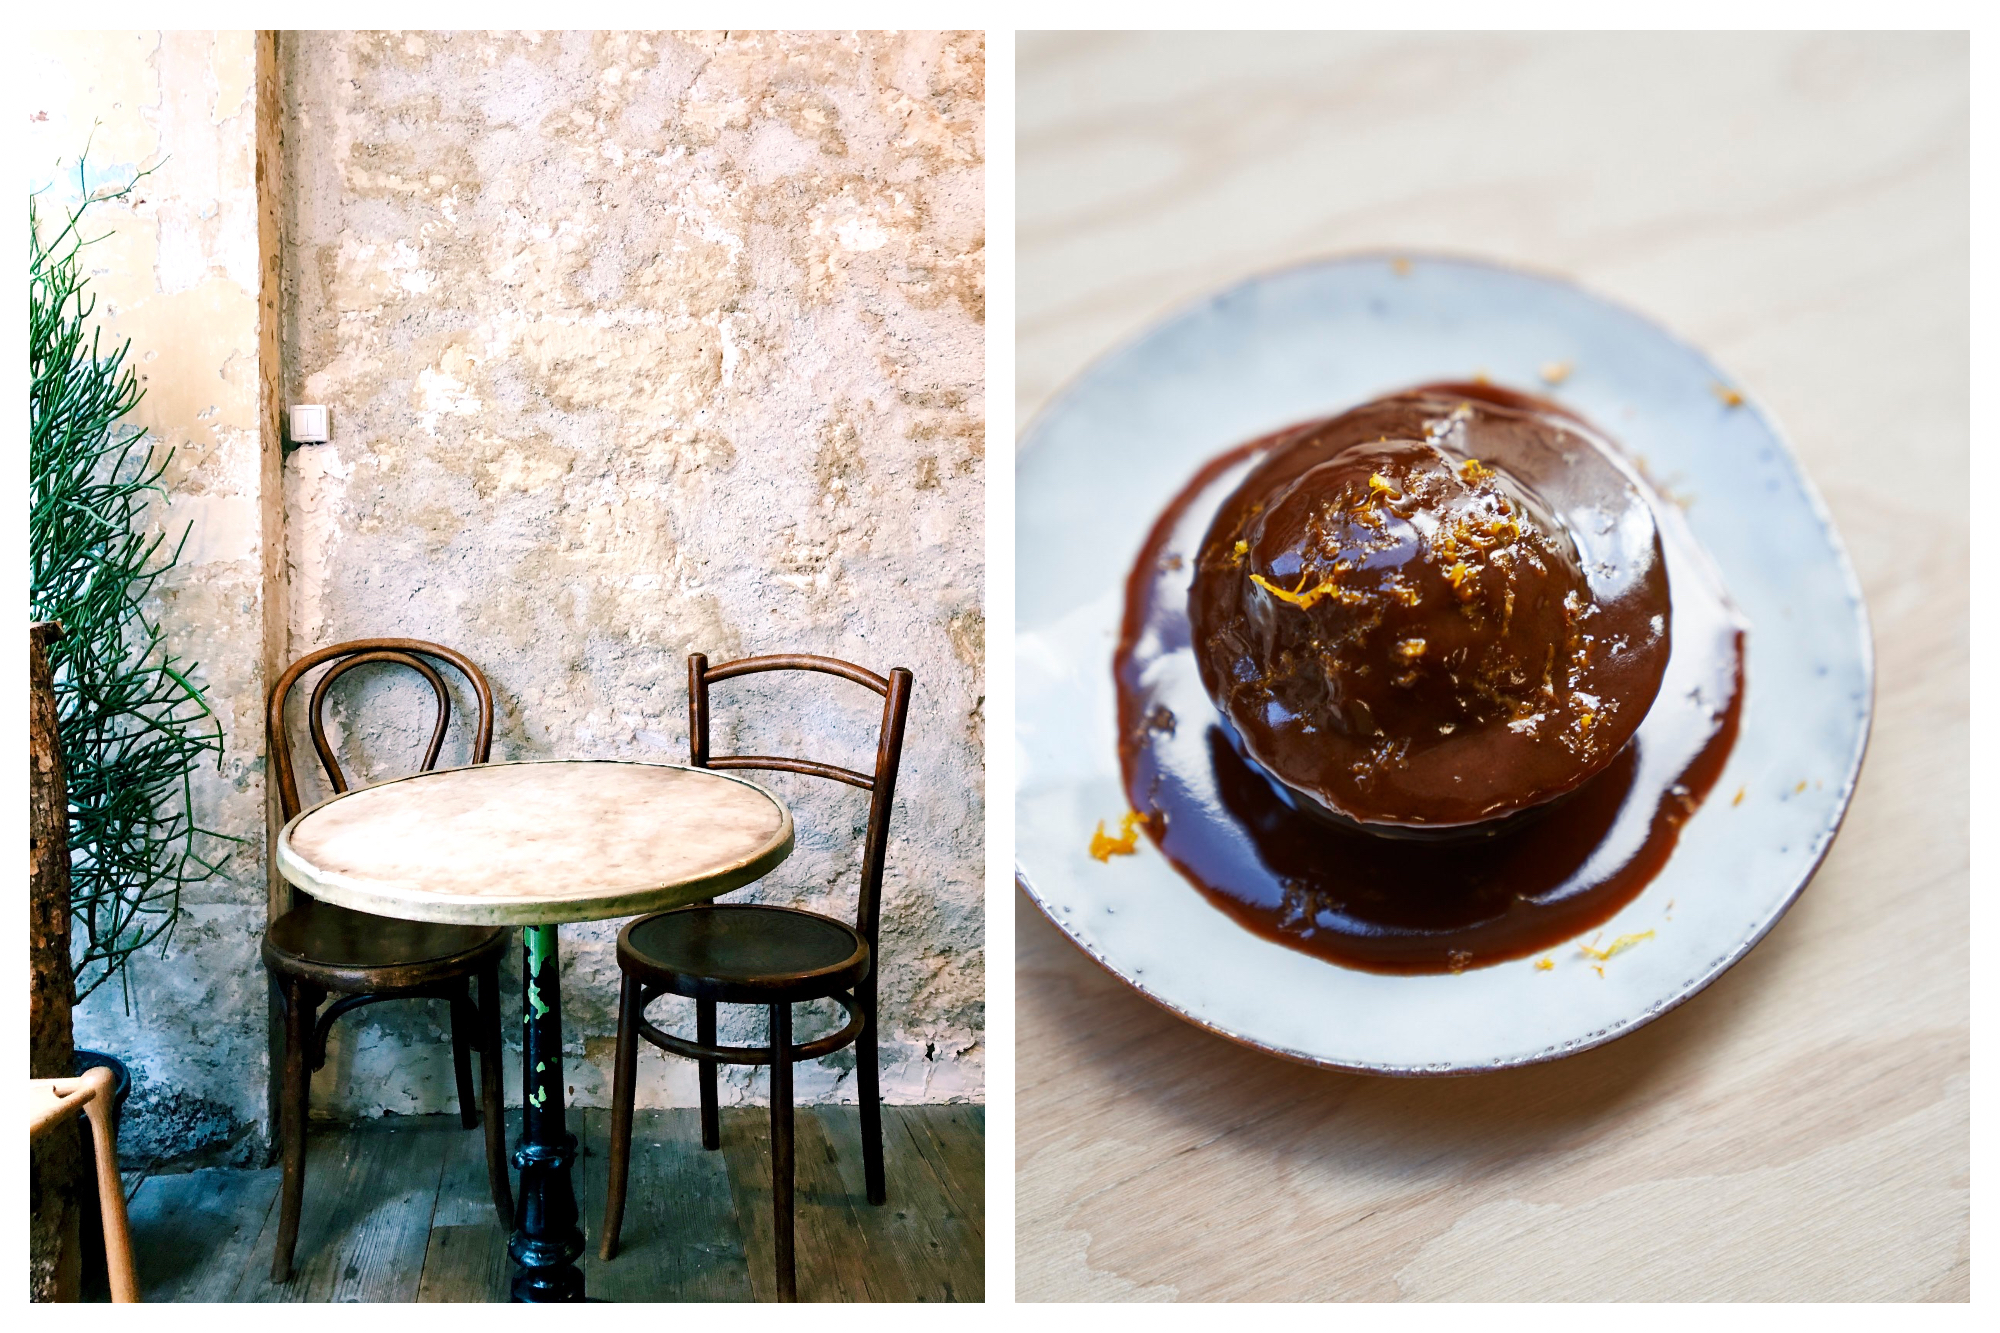 A table and chair with an exposed stone wall (left) and a sticky toffee and chocolate cake (right) at Dreamin Man coffee shop in Paris.